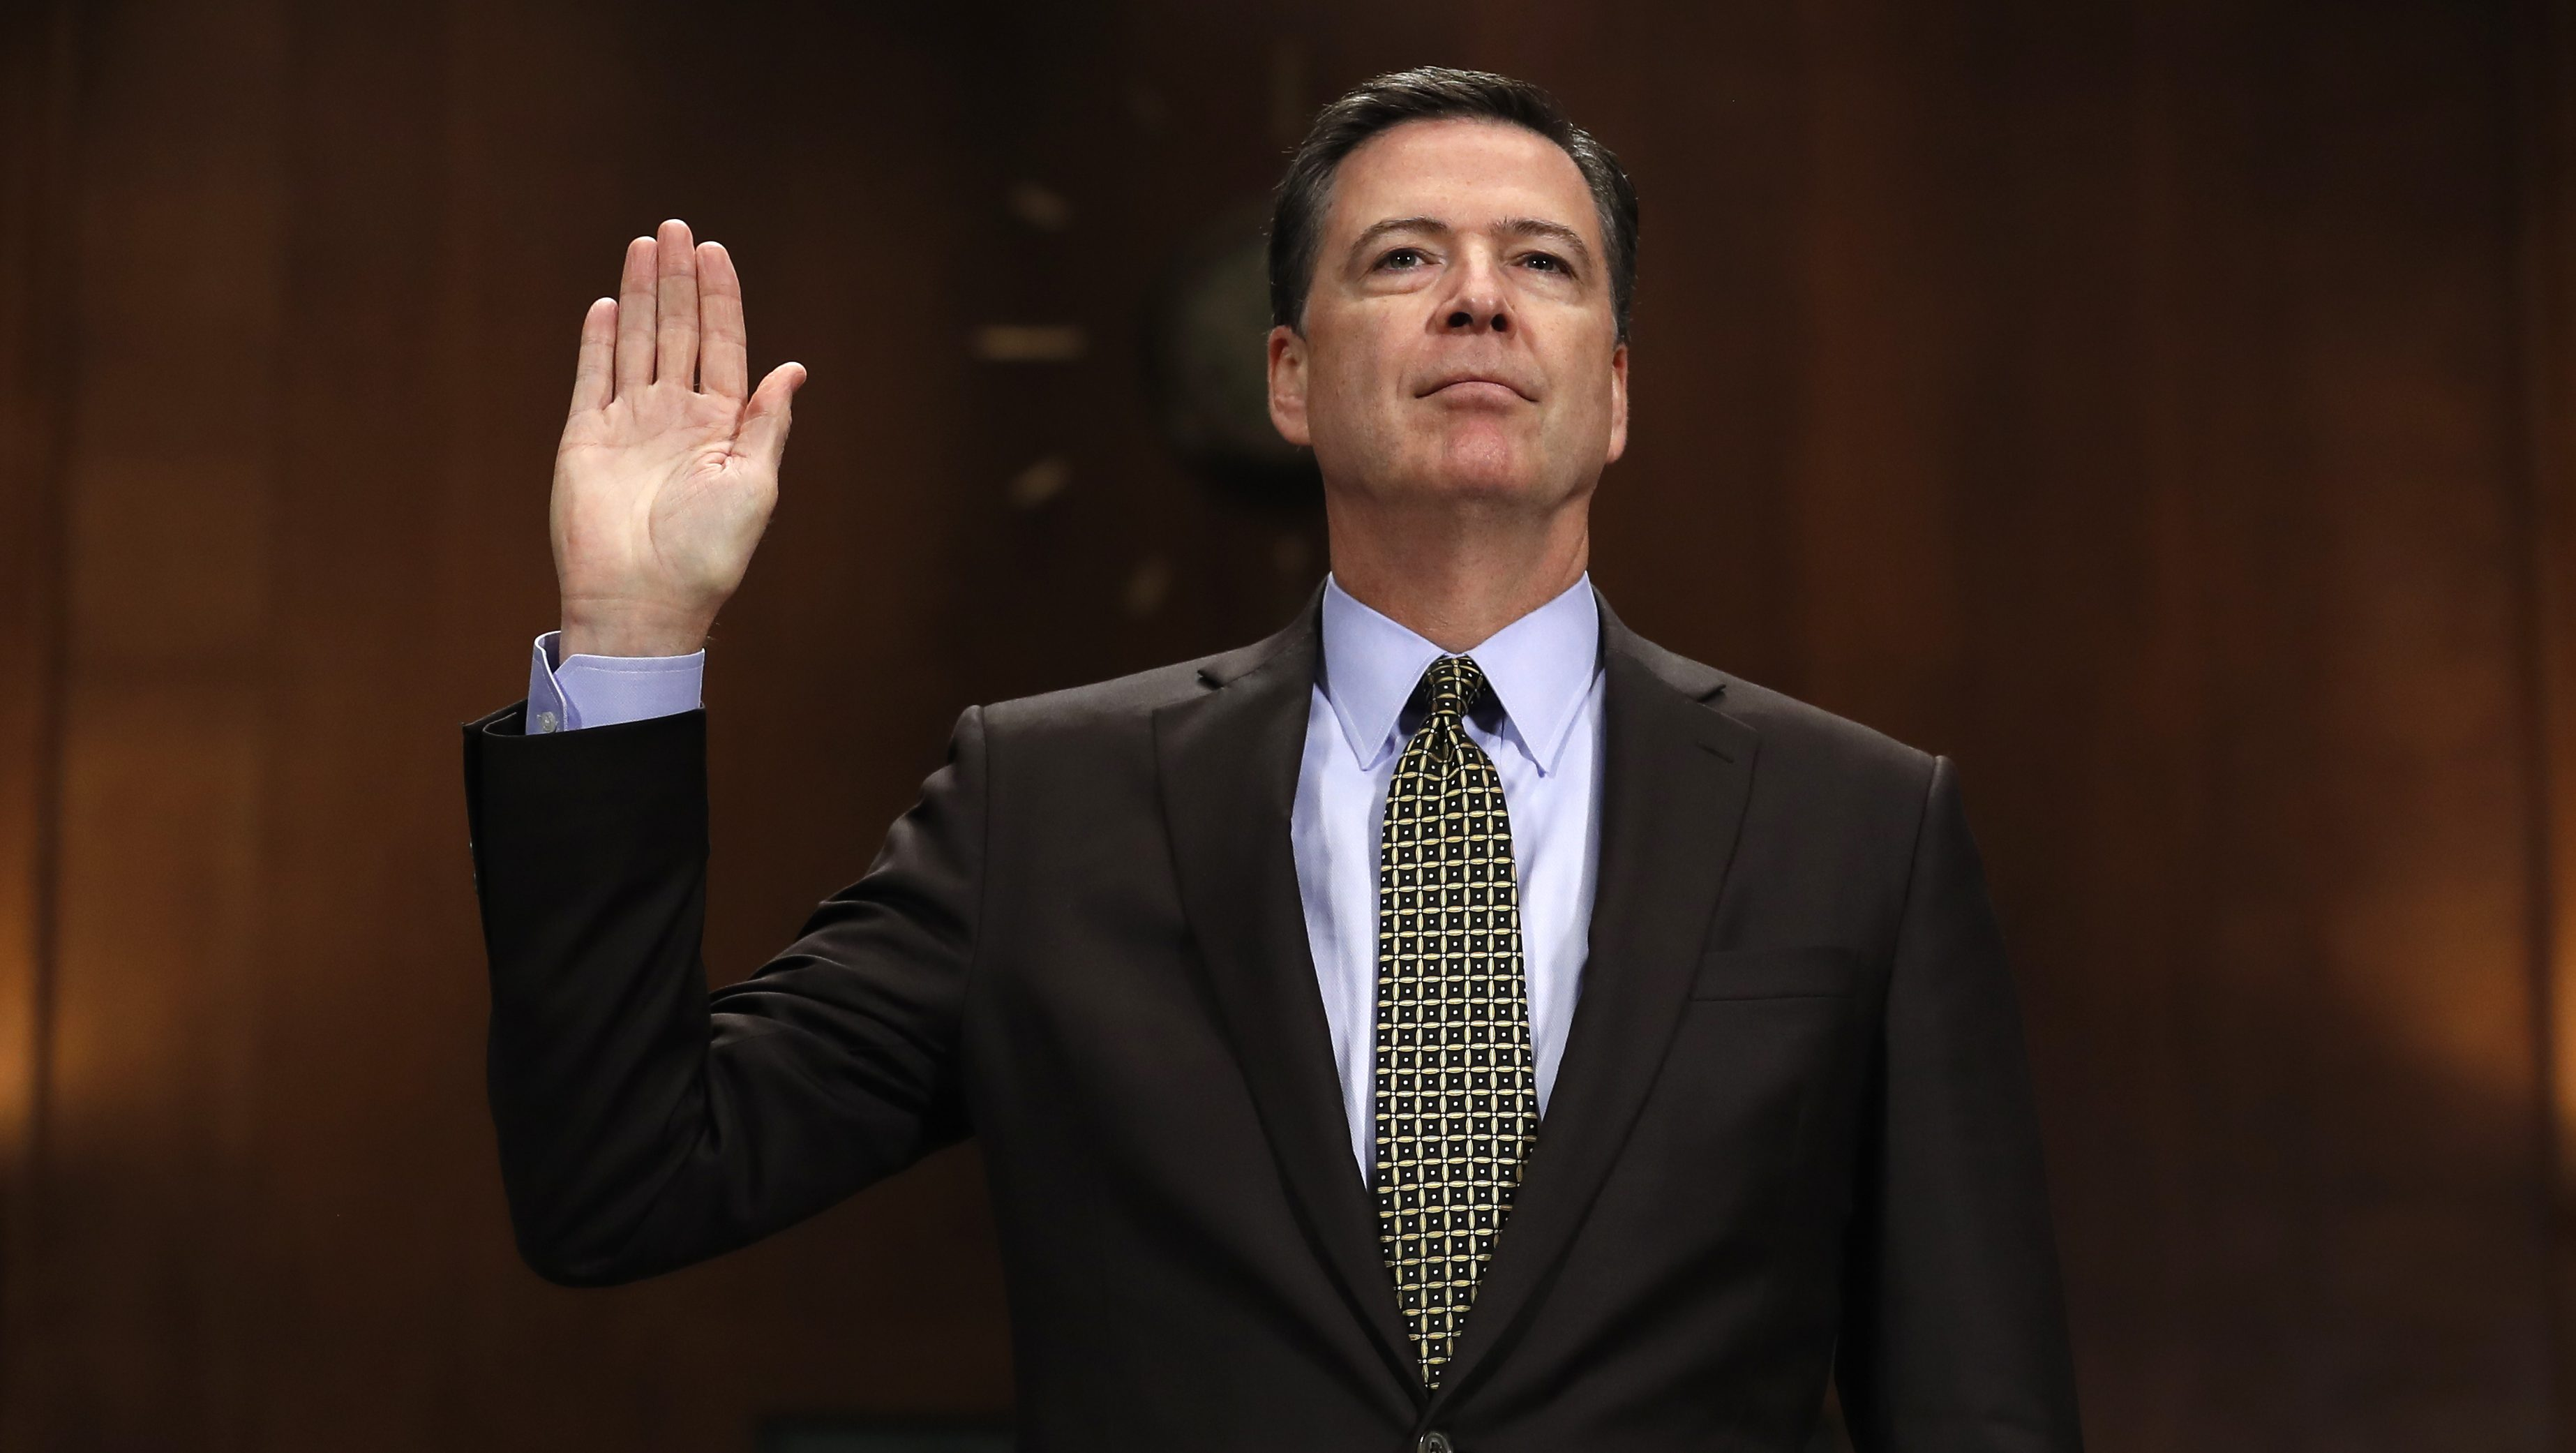 """FBI Director James Comey is sworn-in on Capitol Hill in Washington, Wednesday, May 3, 2017, prior to testifying before the Senate Judiciary Committee hearing: """"Oversight of the Federal Bureau of Investigation."""" (AP Photo/Carolyn Kaster)"""